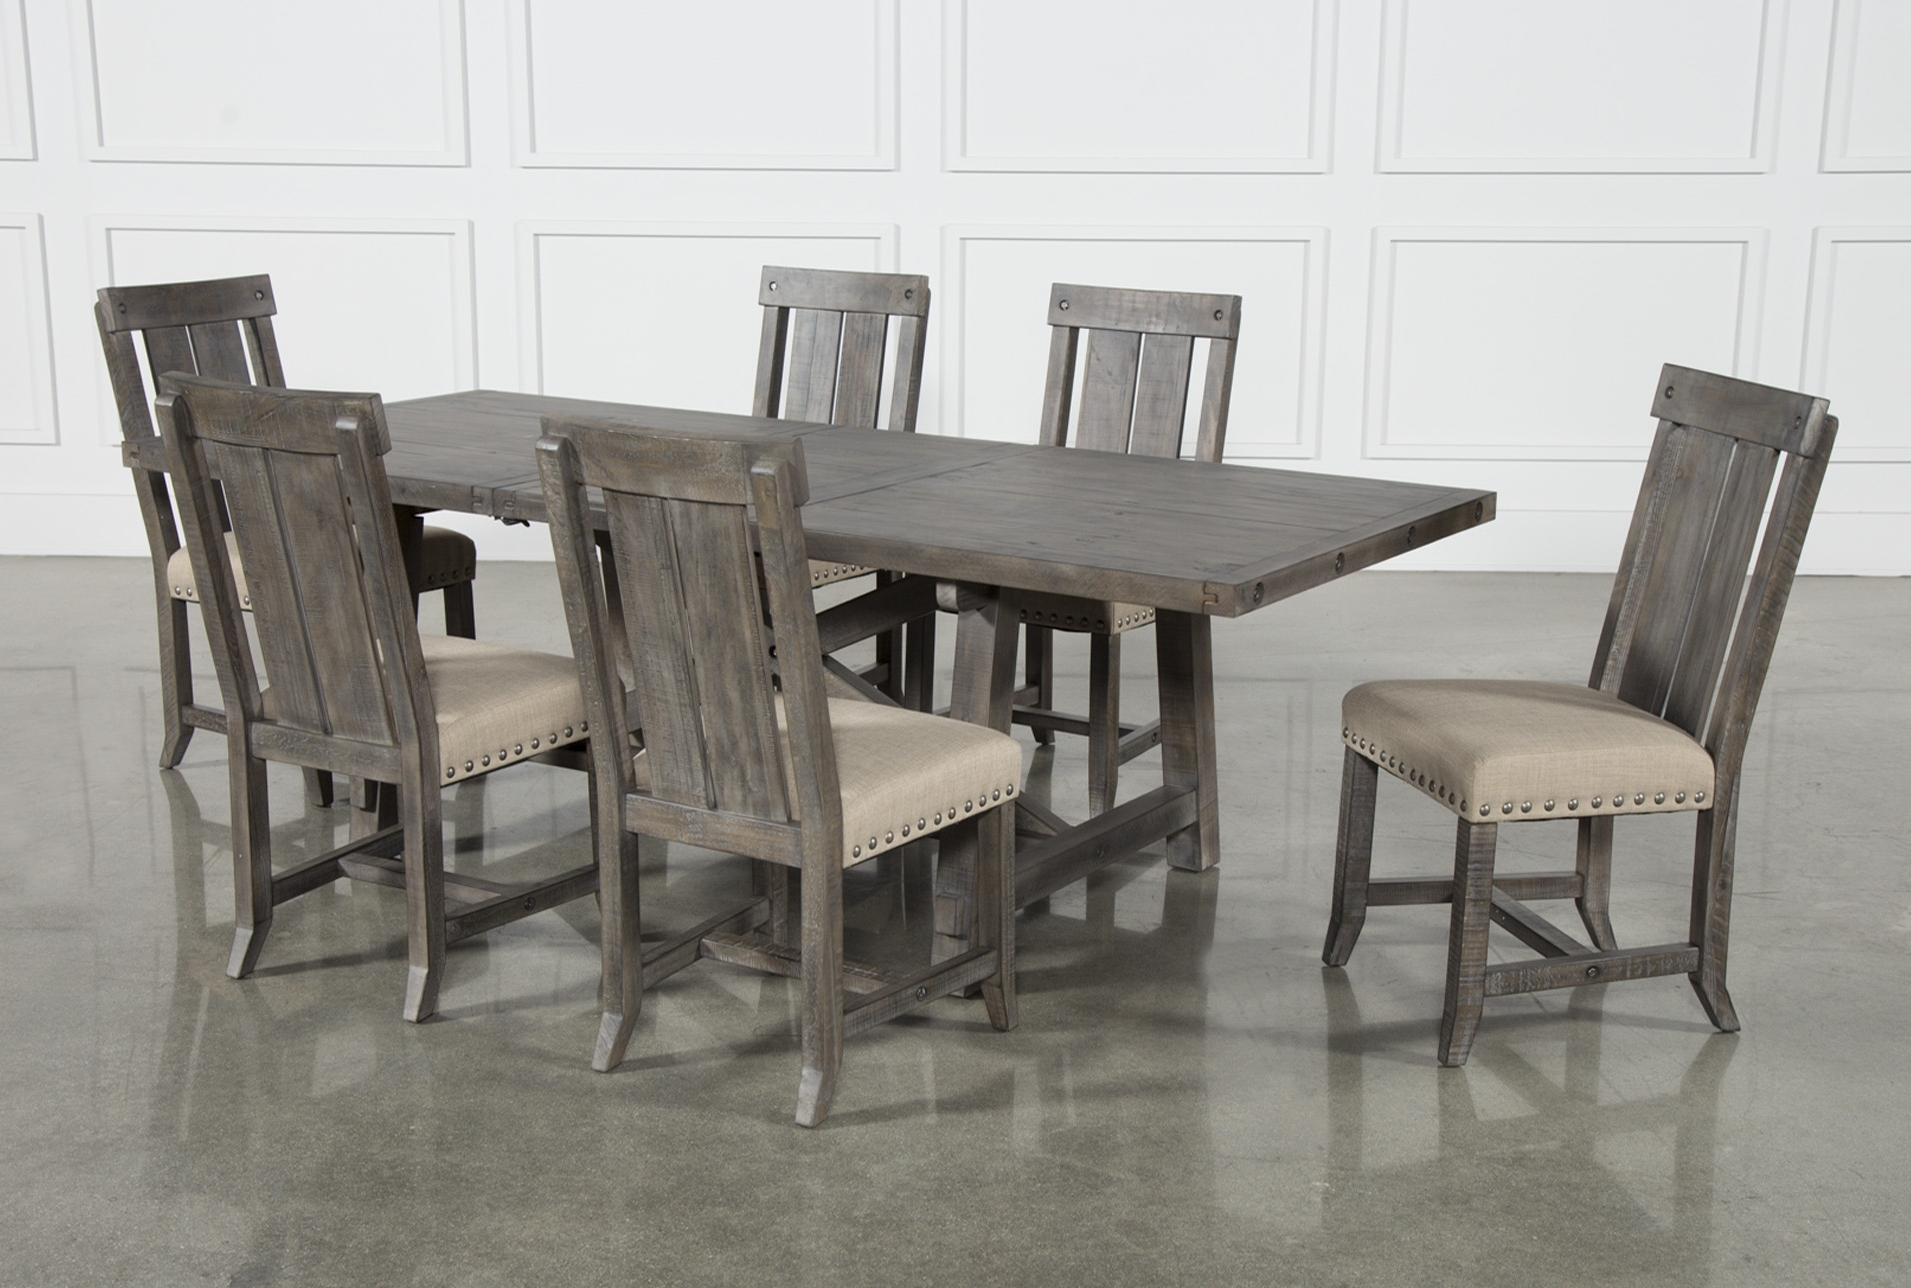 Best And Newest Jaxon Grey 7 Piece Rectangle Extension Dining Set W/wood Chairs With Regard To Jaxon Grey 7 Piece Rectangle Extension Dining Sets With Uph Chairs (View 2 of 25)